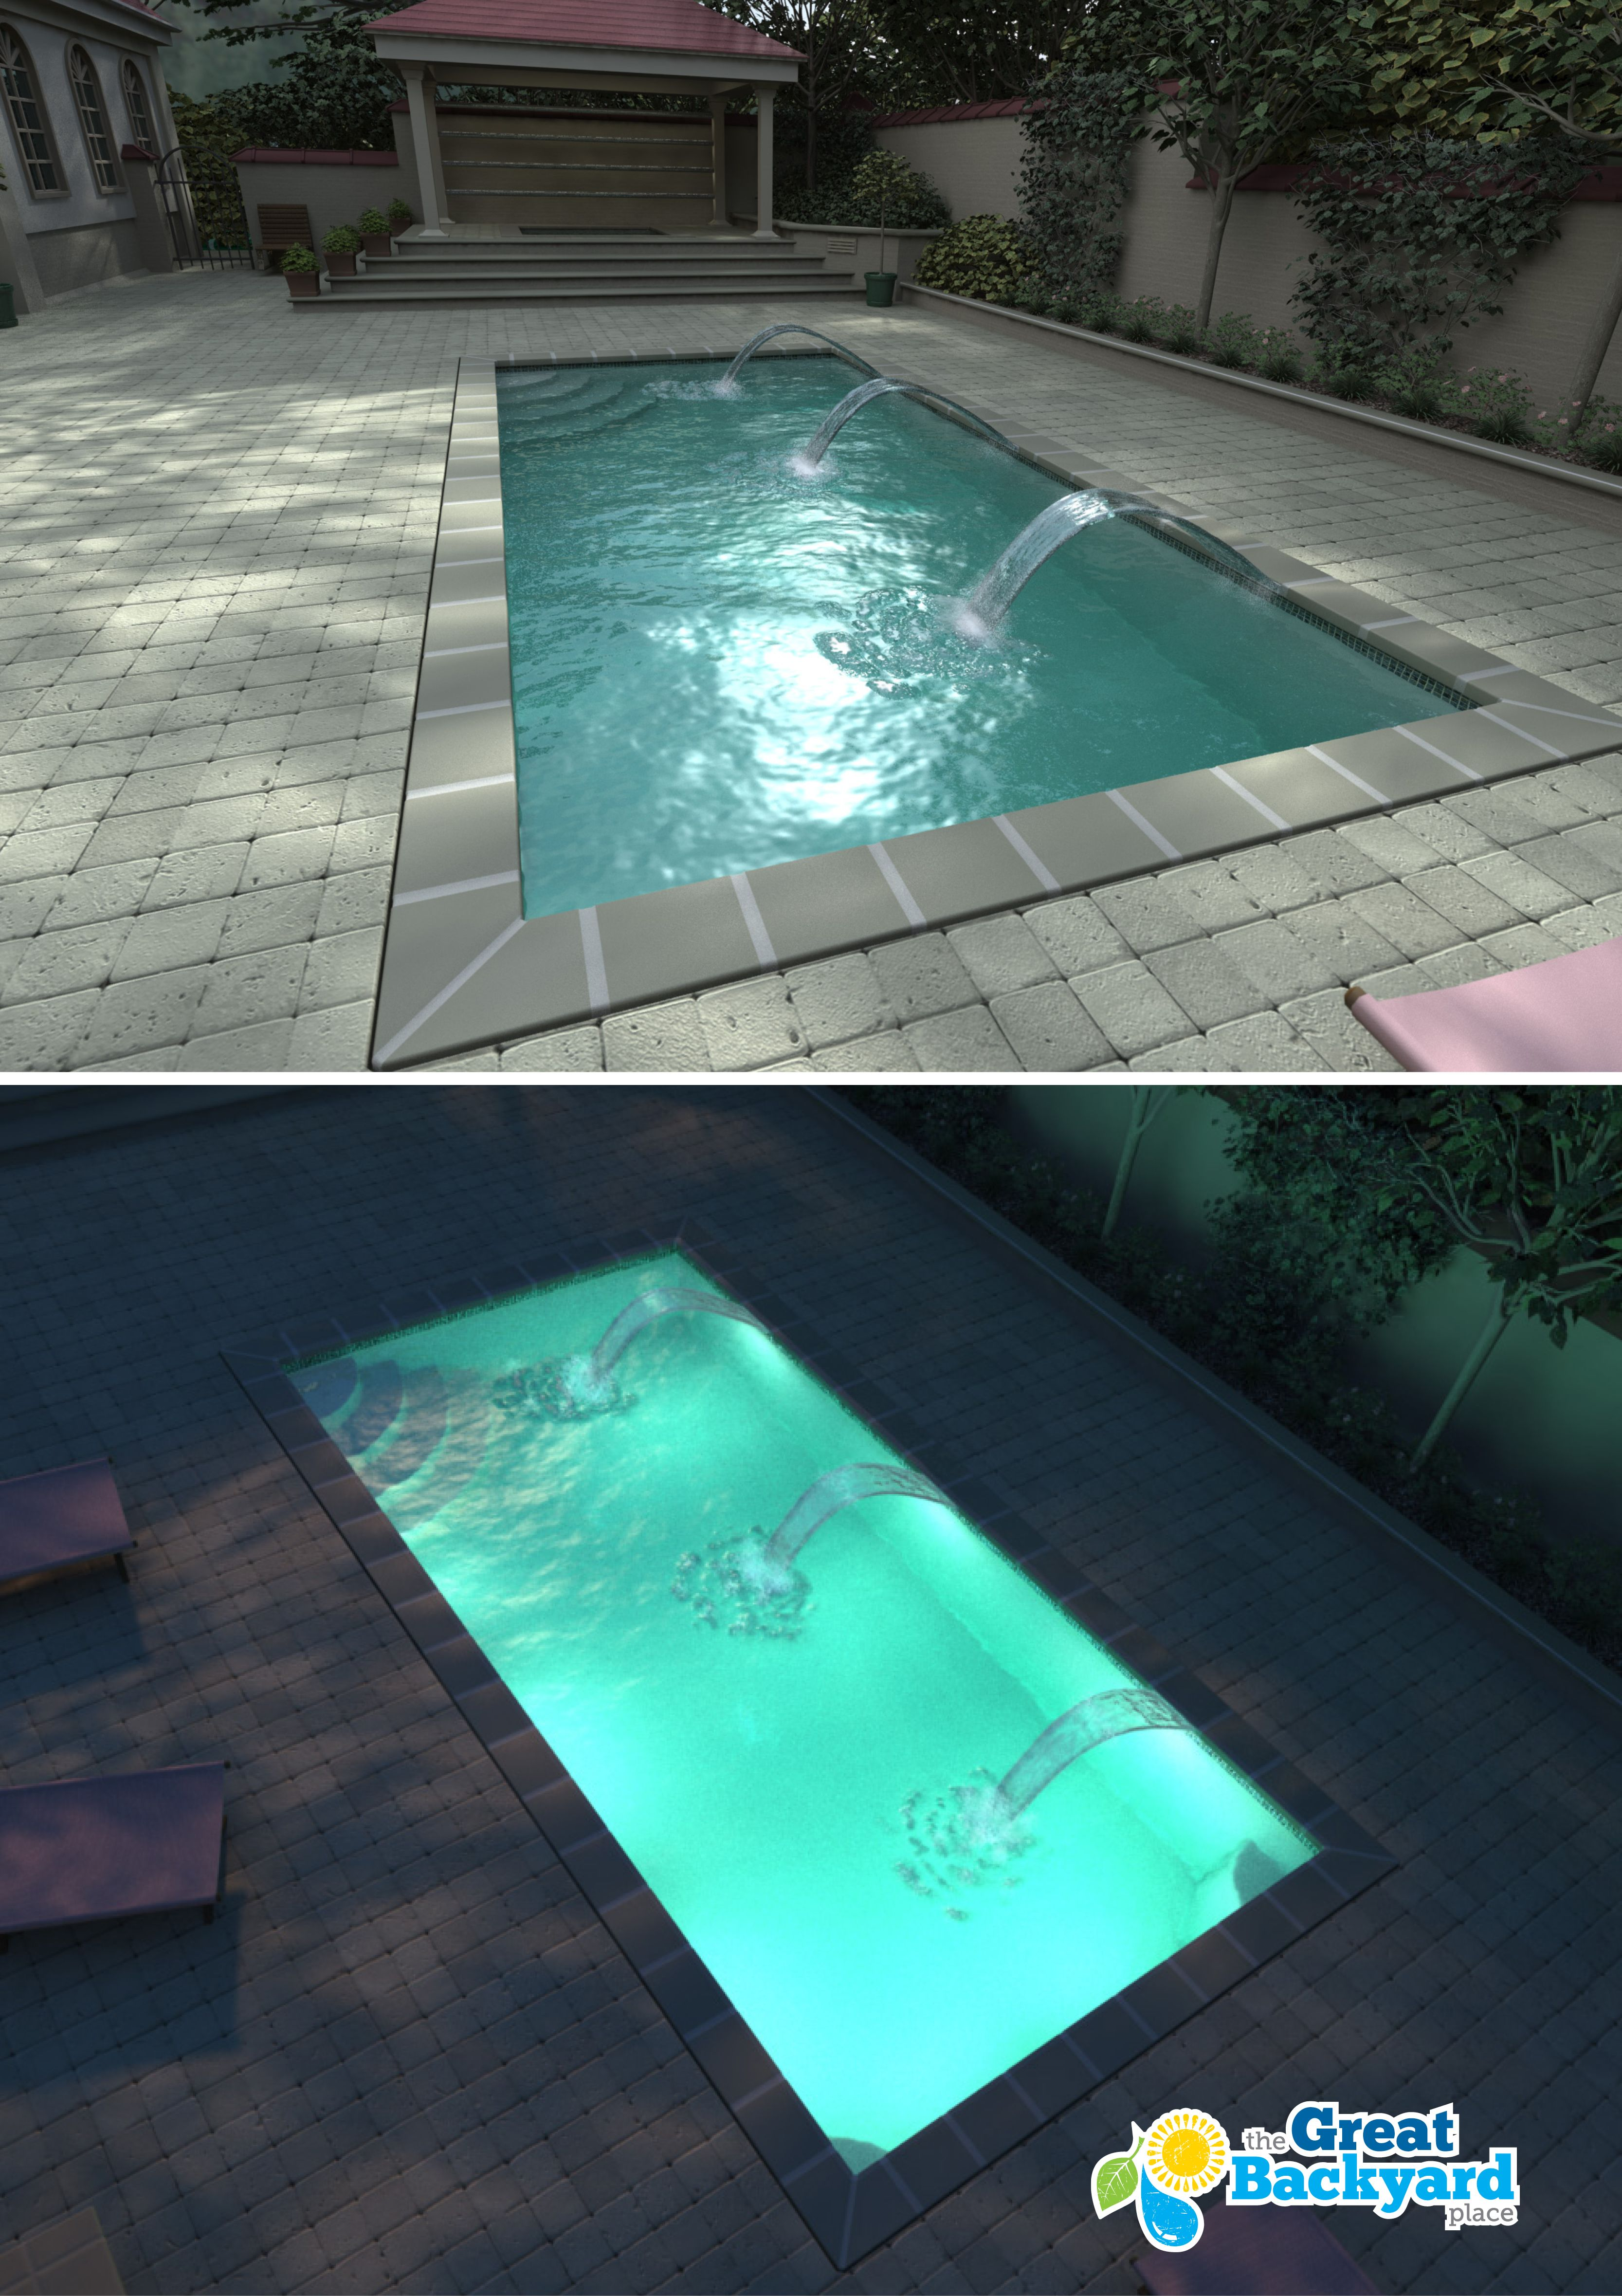 Elegant The Helios Compact Rectangular Shape Is A Great Option For Those Looking  For A Smaller Sized Rectangle Pool. It Is Also An Excellent Model For  Adding Water ...